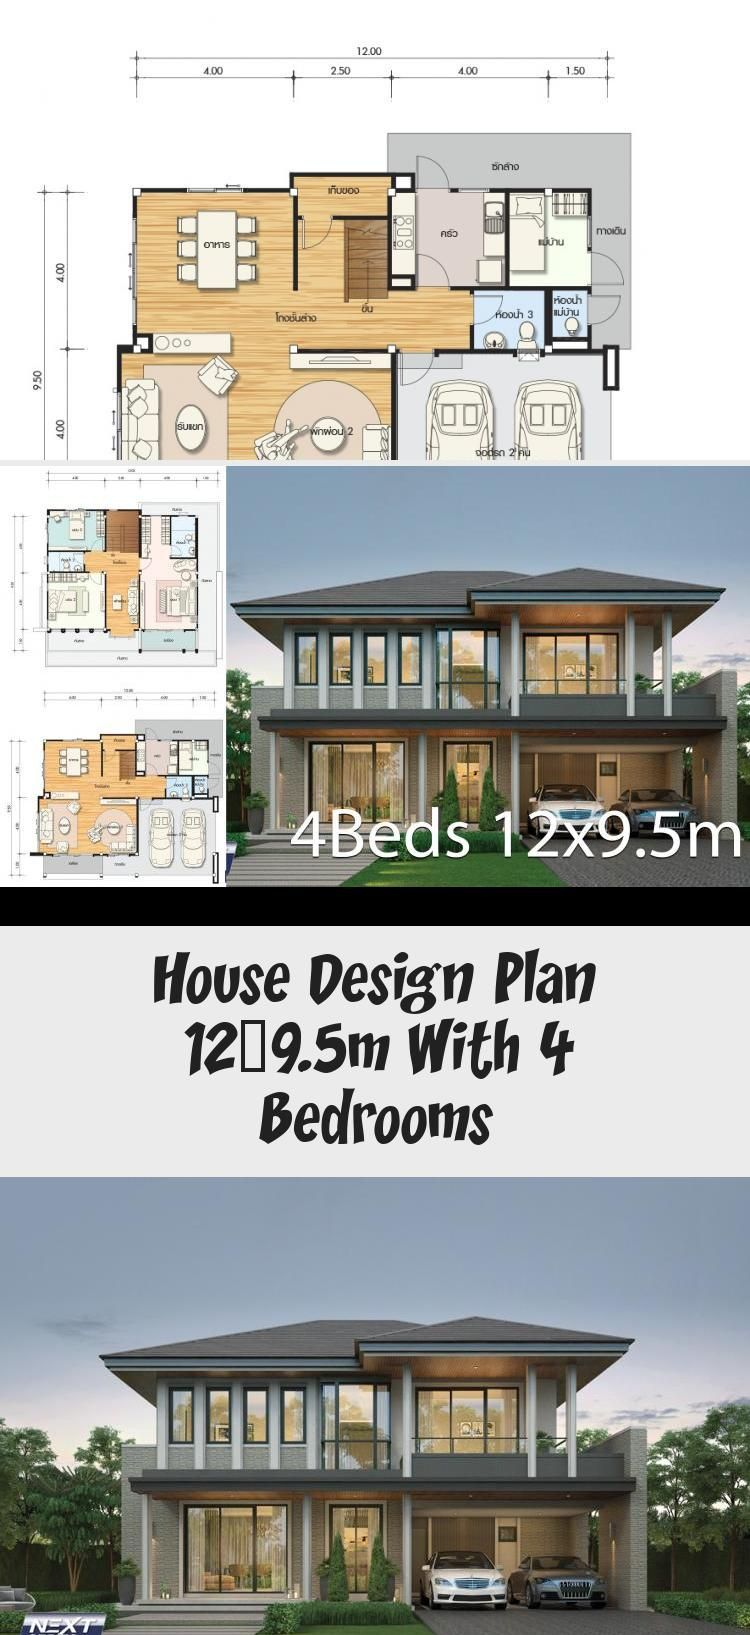 House Design Plan 12x9 5m With 4 Bedrooms House Plan Map Philippines House Design Architectural House Plans Home Design Plans